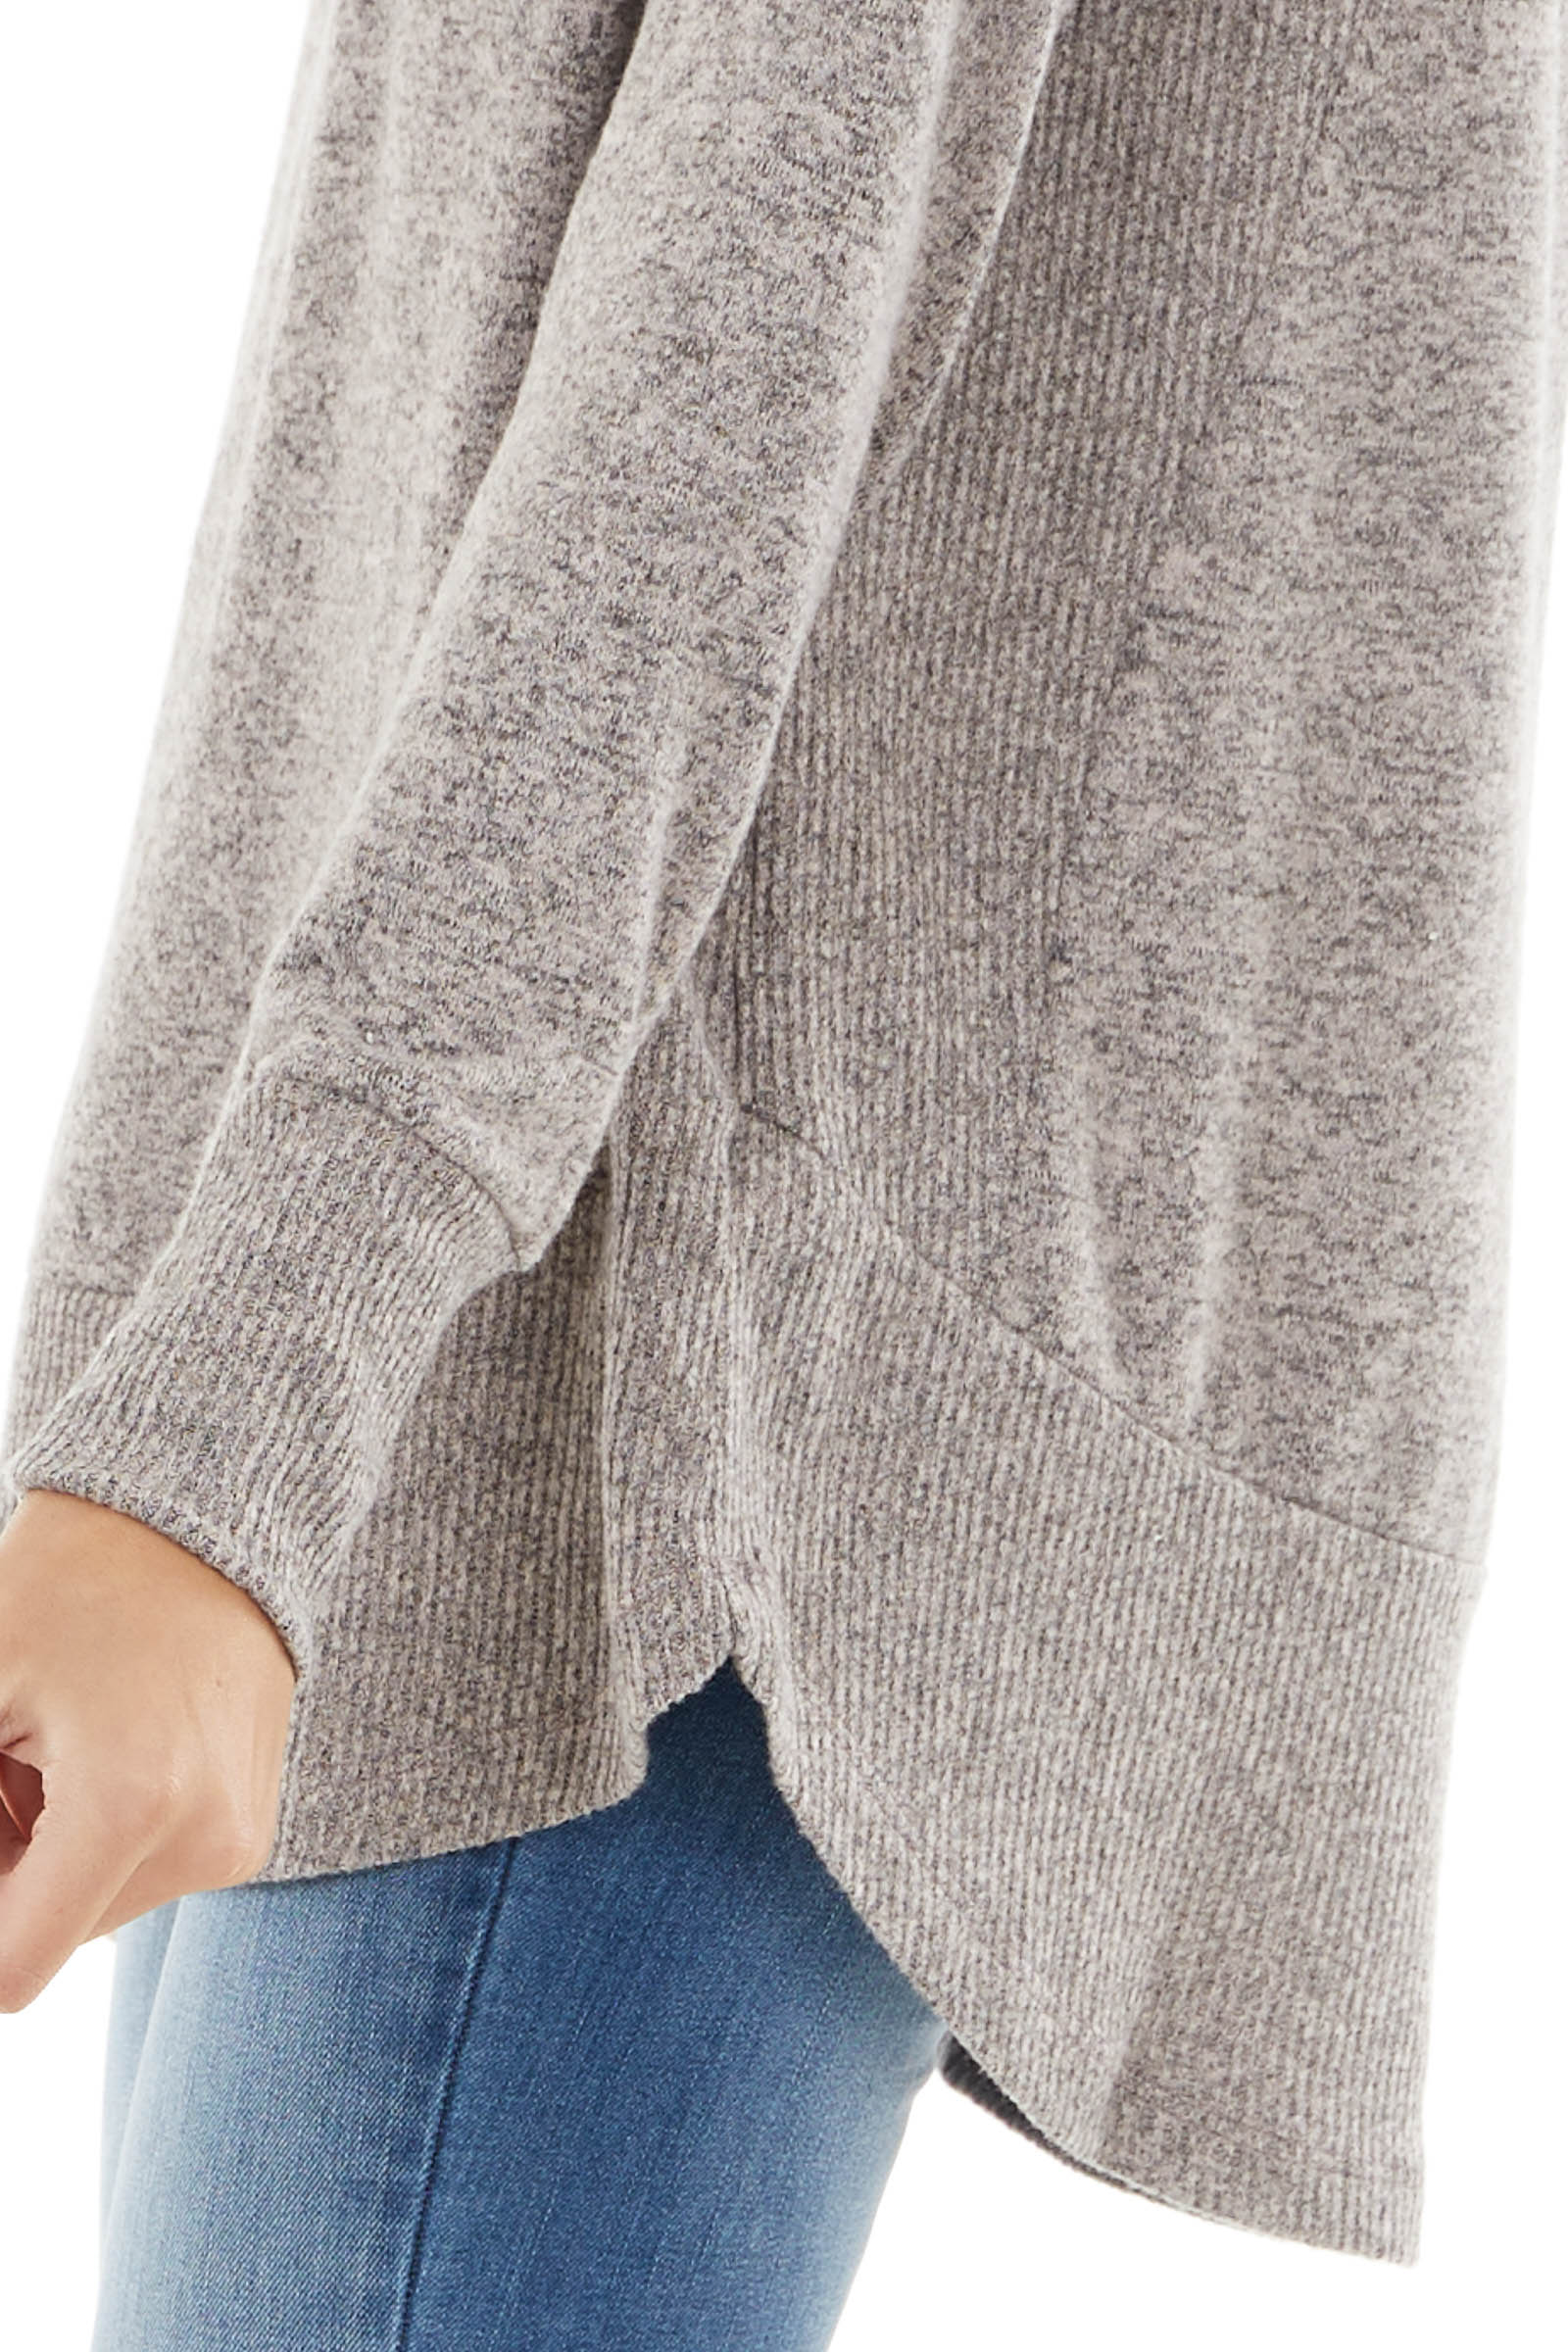 Dusty Rose Stretchy Knit Long Sleeve Top with Ribbed Details